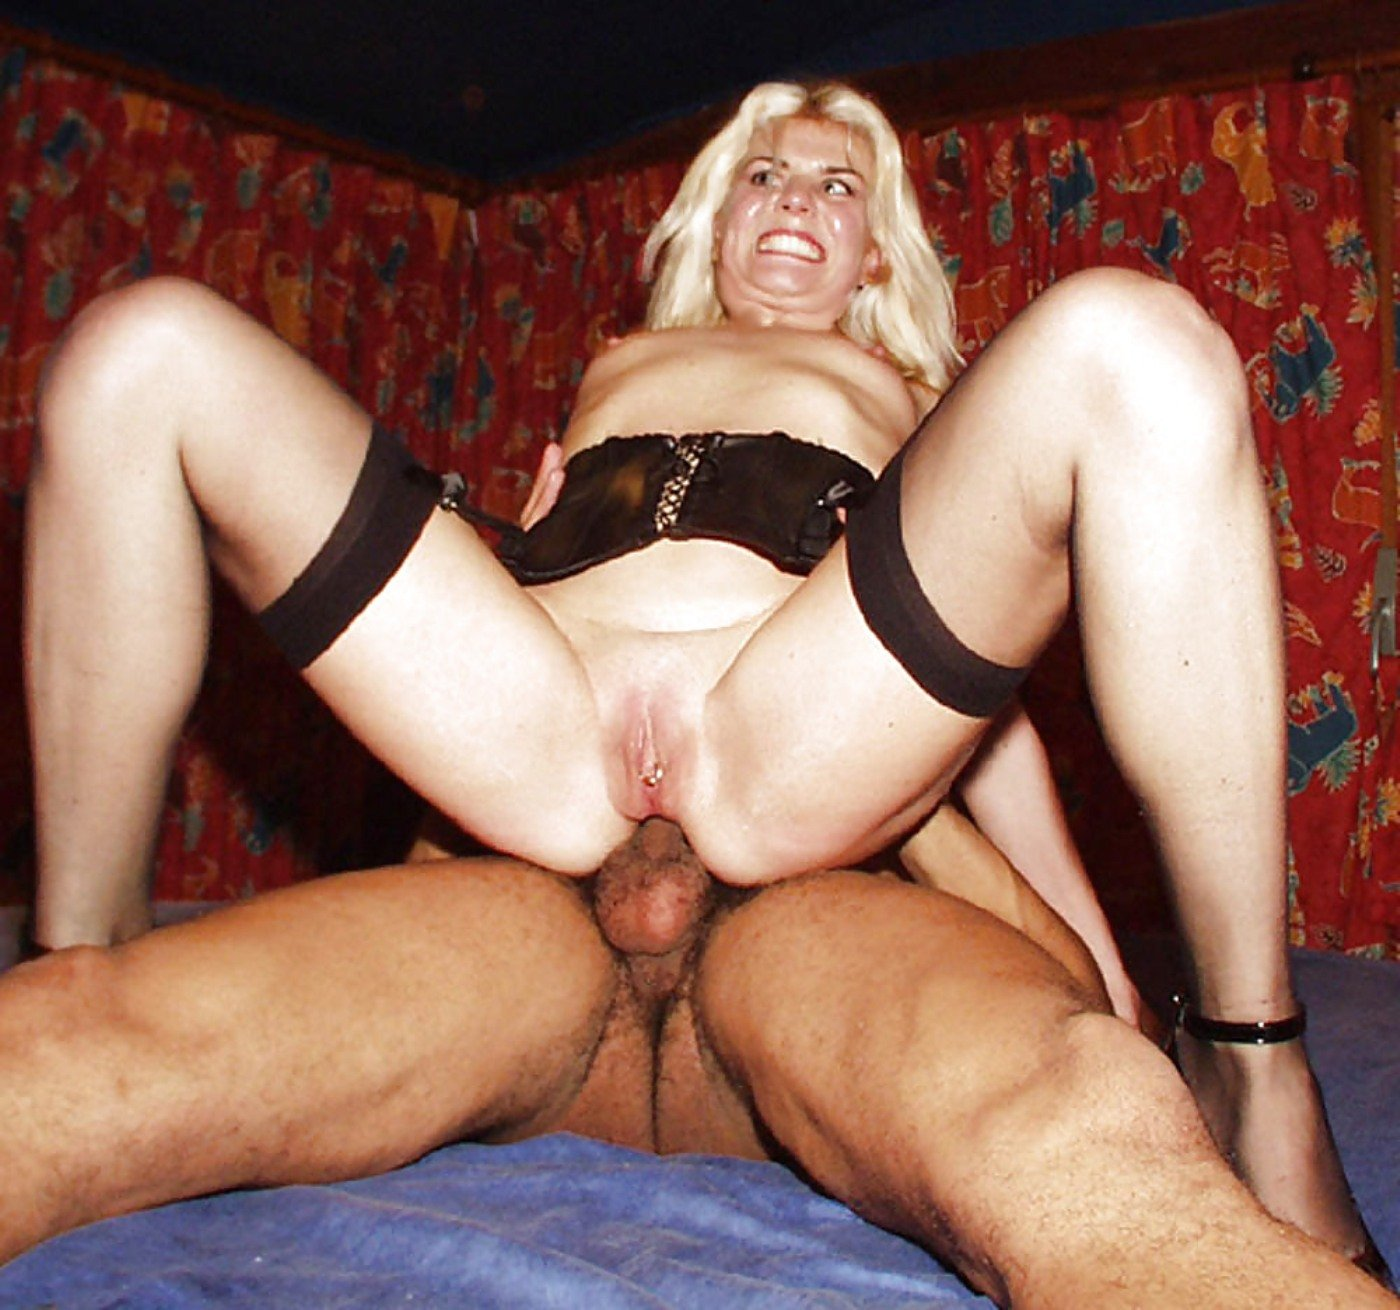 Amateur interracial latine